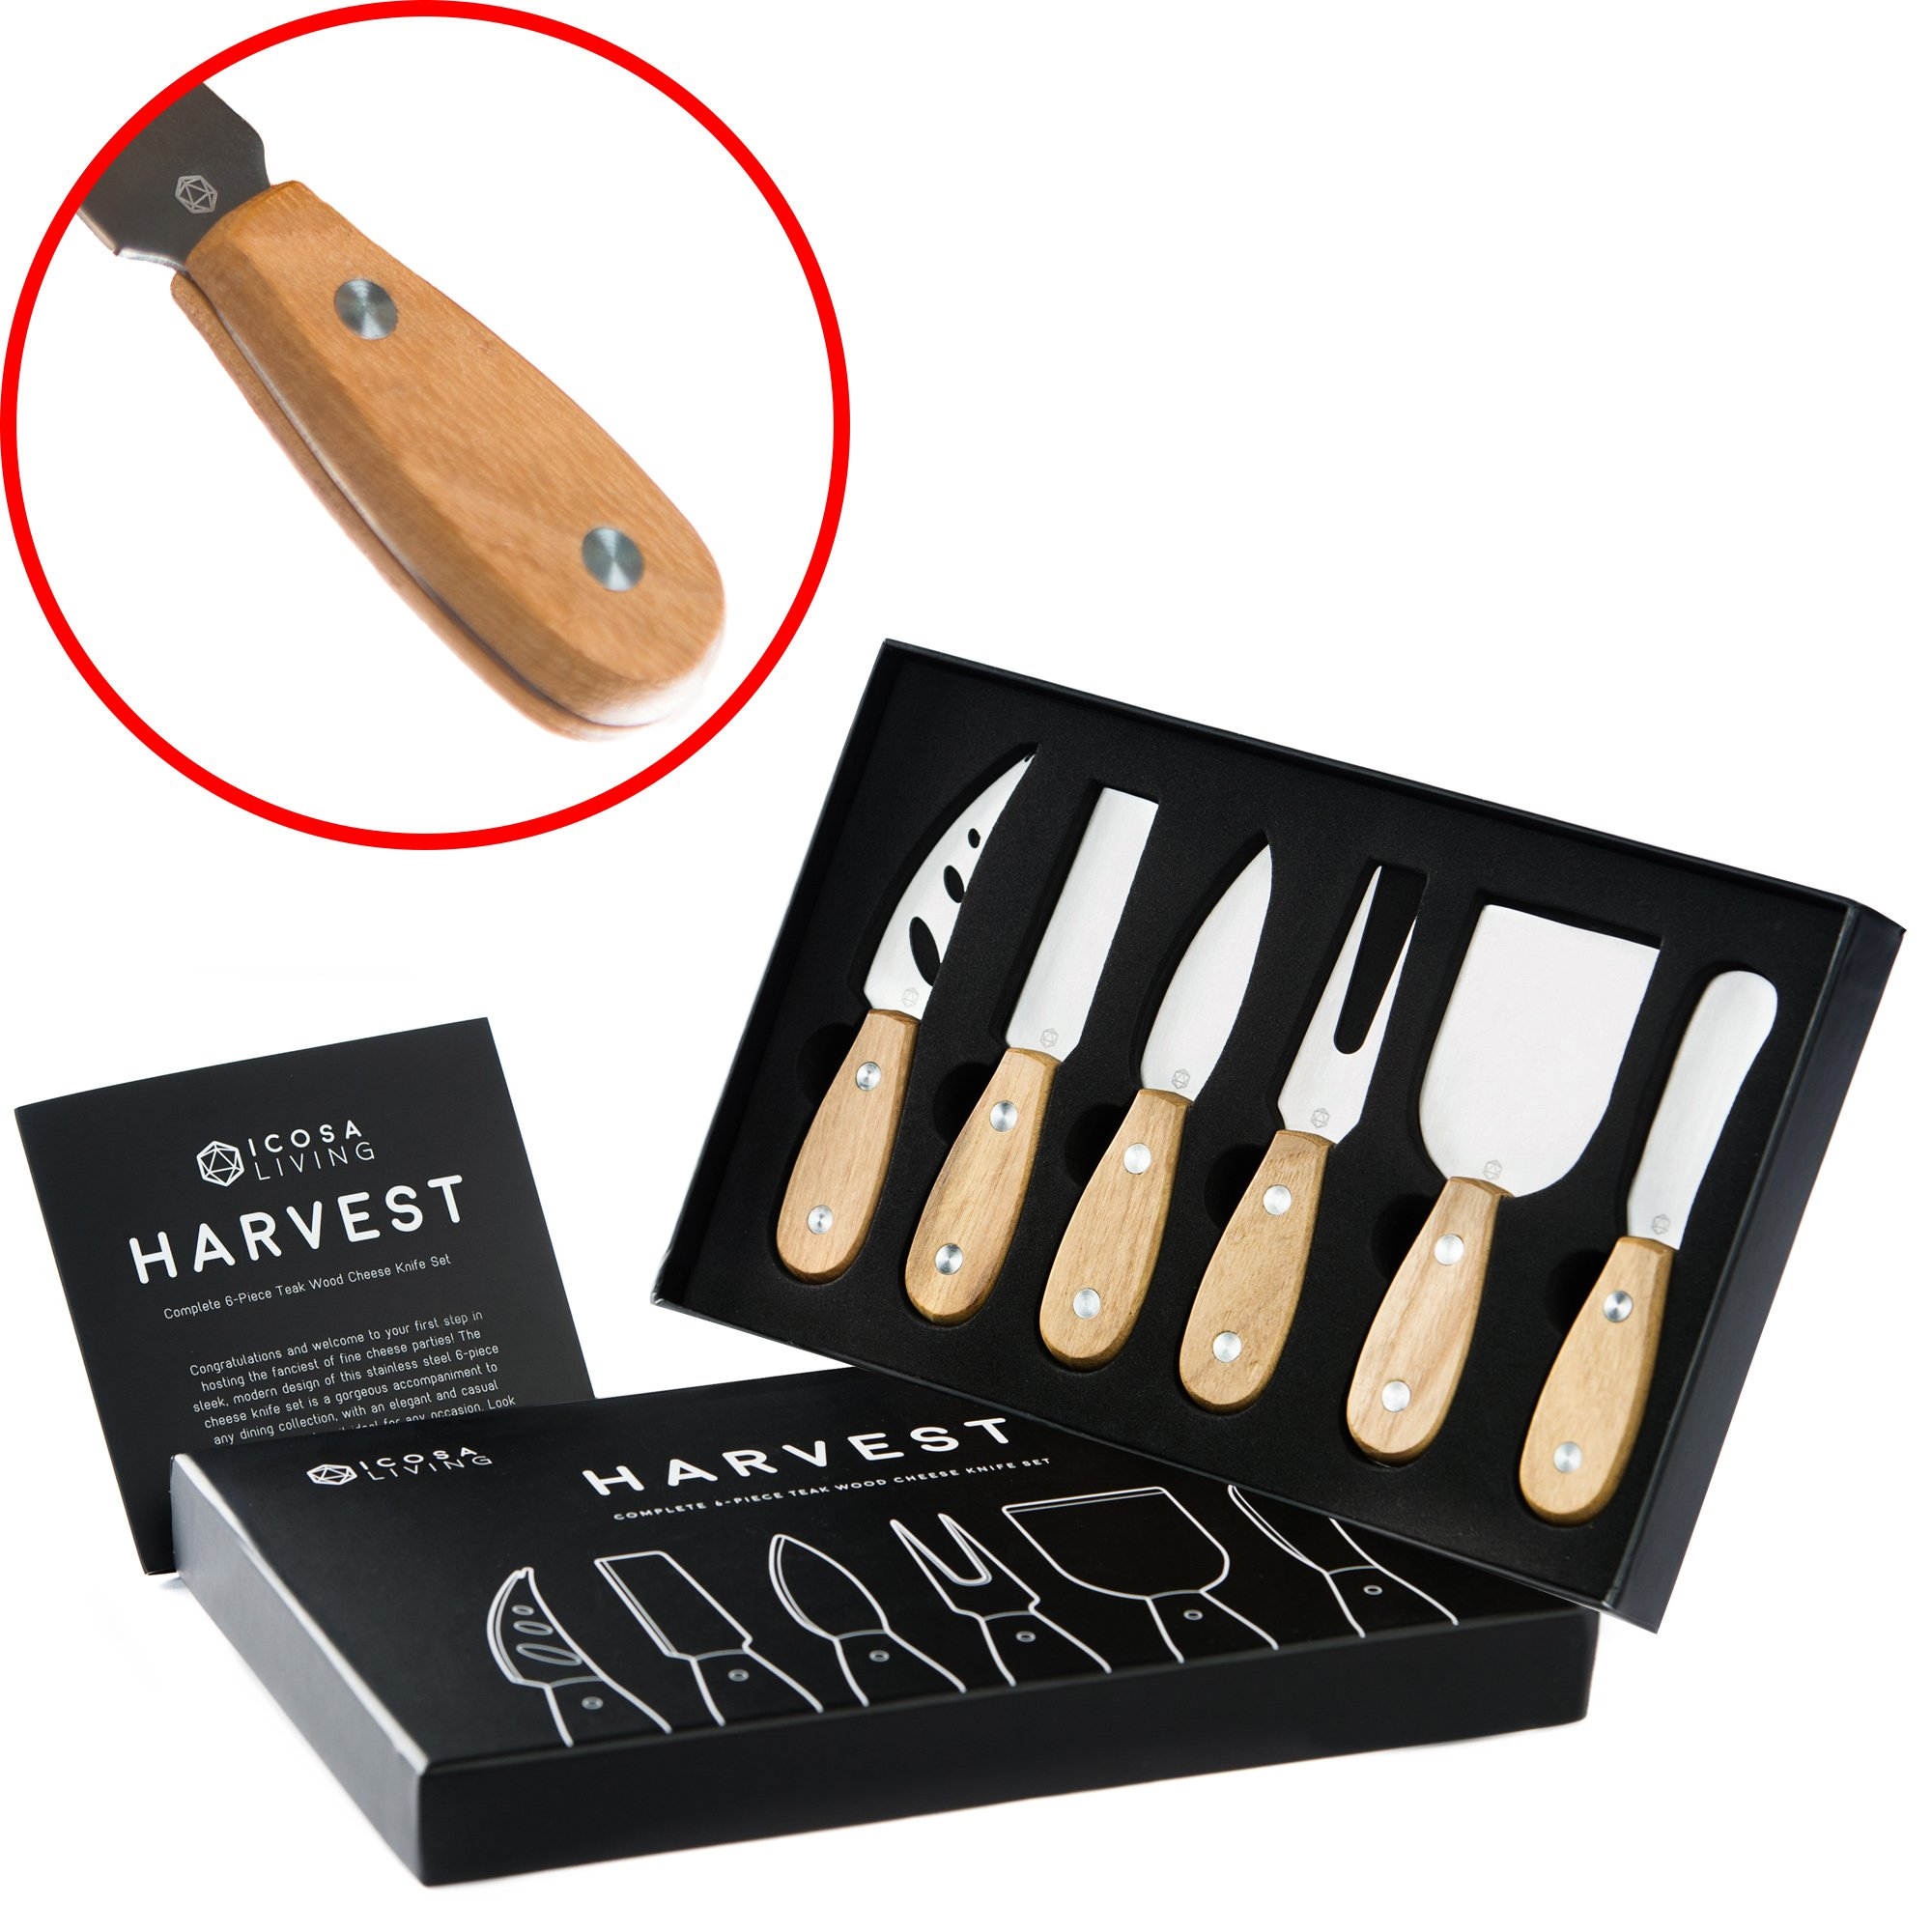 HARVEST Premium 6-Piece Cheese Knife Set - Complete Stainless Steel Cheese Knives Collection with Teak Wood Handles and Full-Length Blades